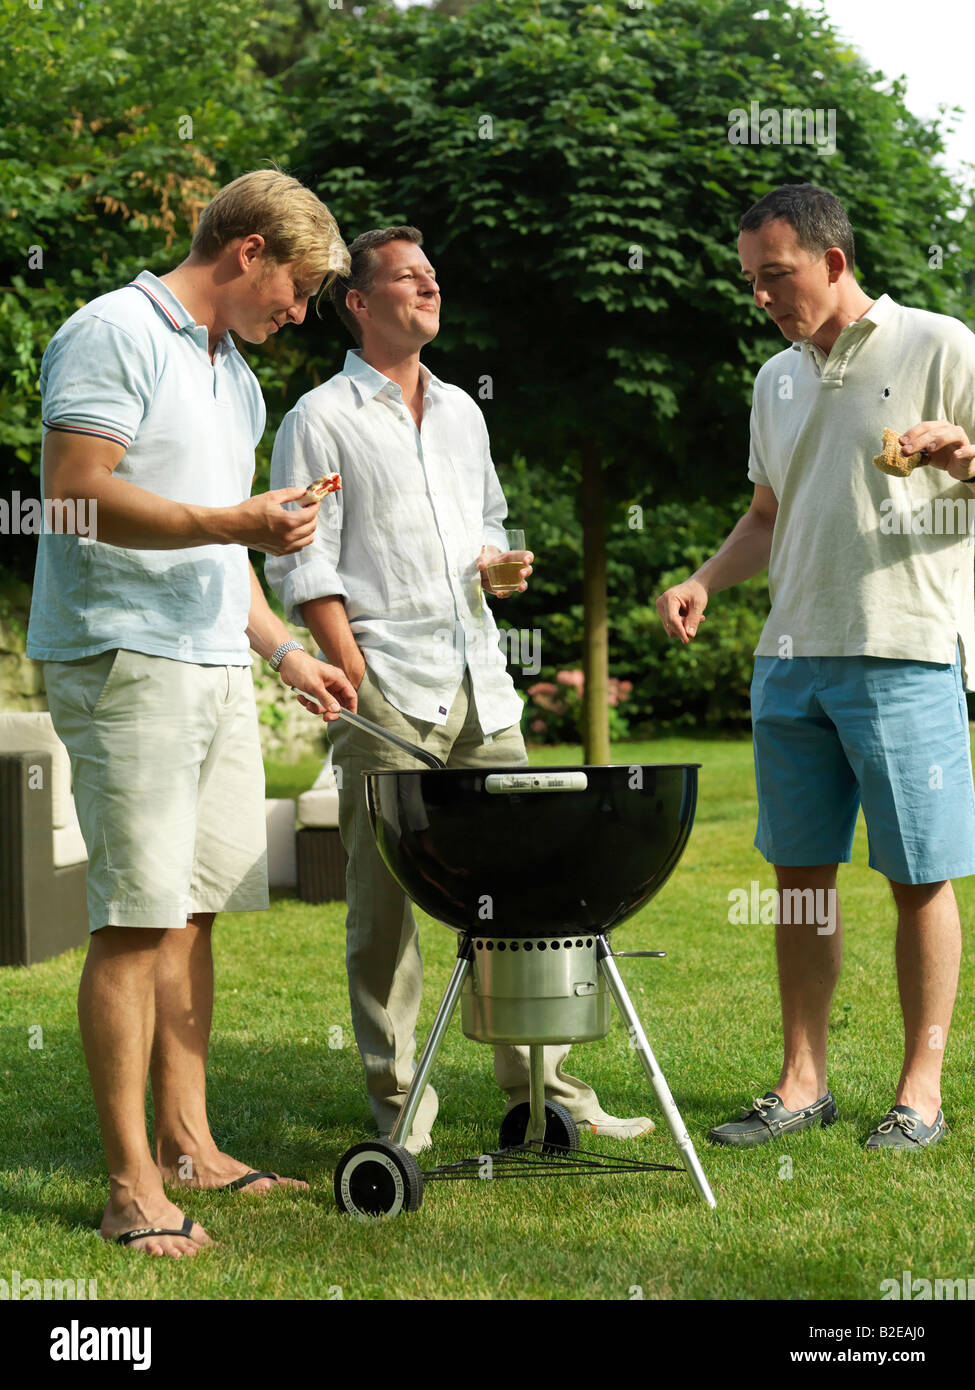 Group of men having barbecue - Stock Image